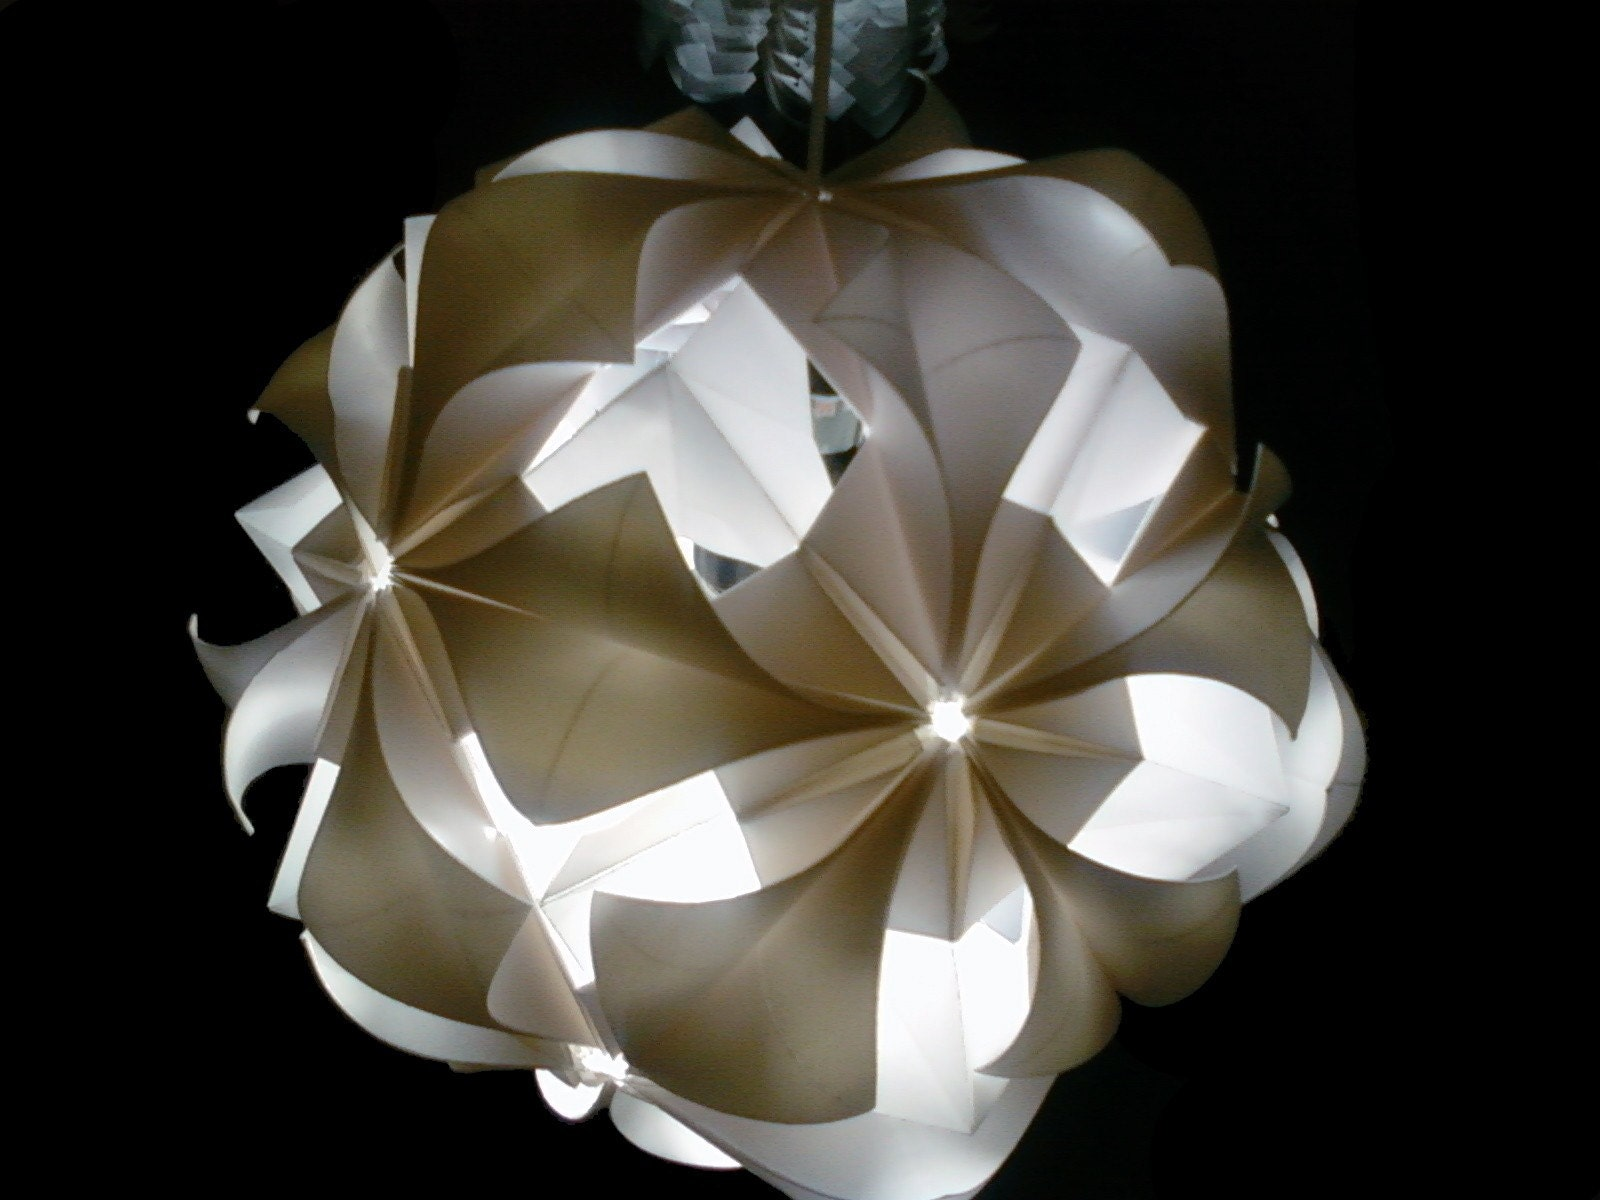 White Origami Hanging Lamp 10 inches